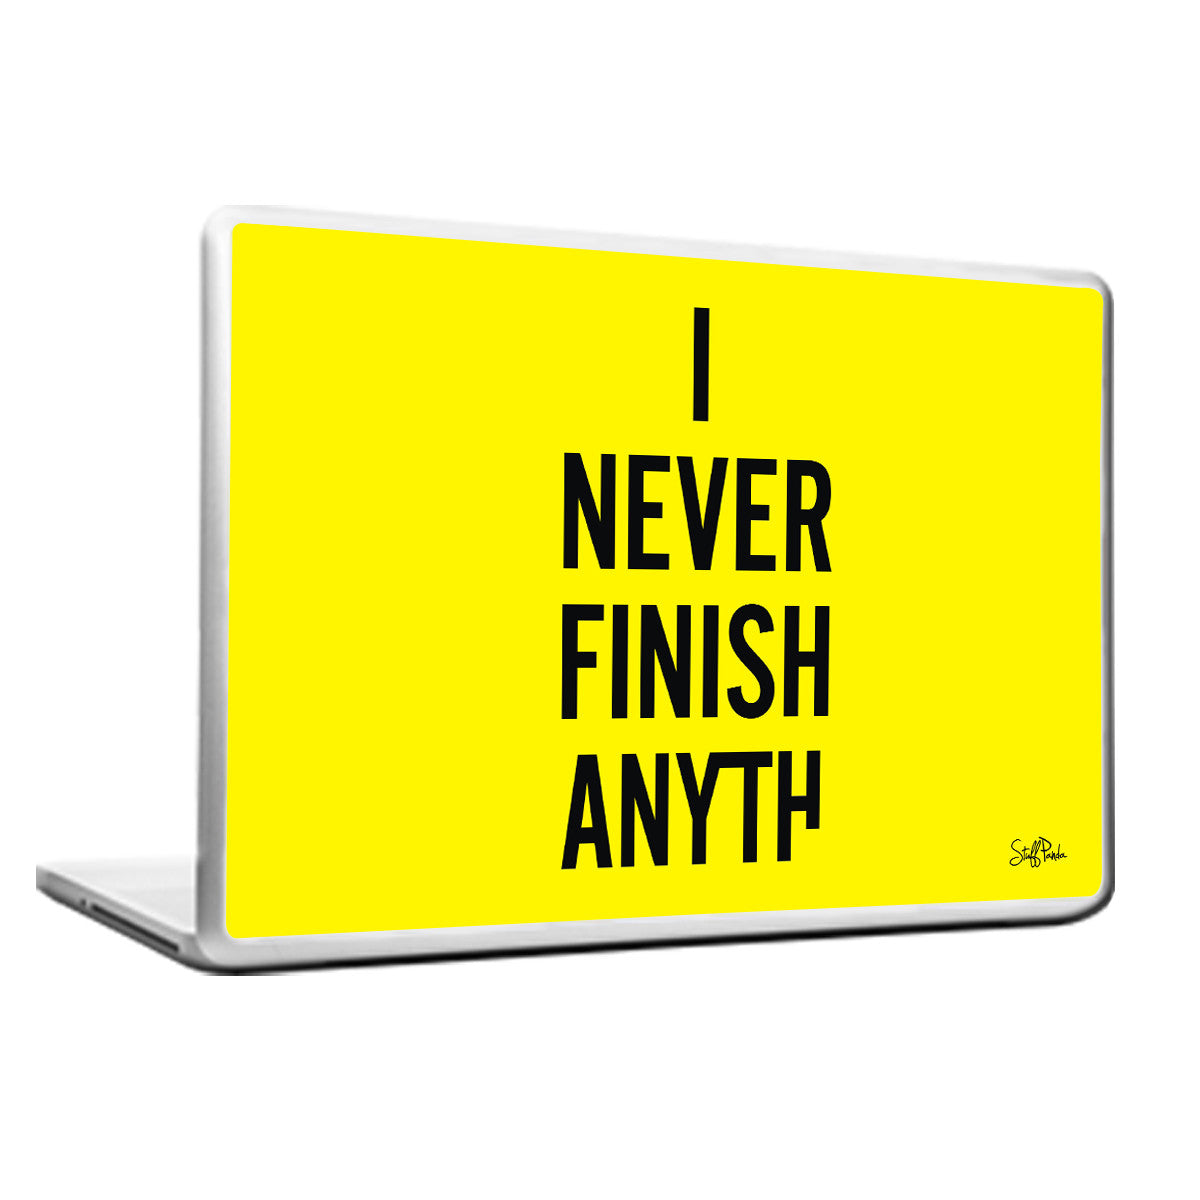 Cool Funky Funny I never Finish Laptop skin vinyl decals Yellow - stuffpanda - 1